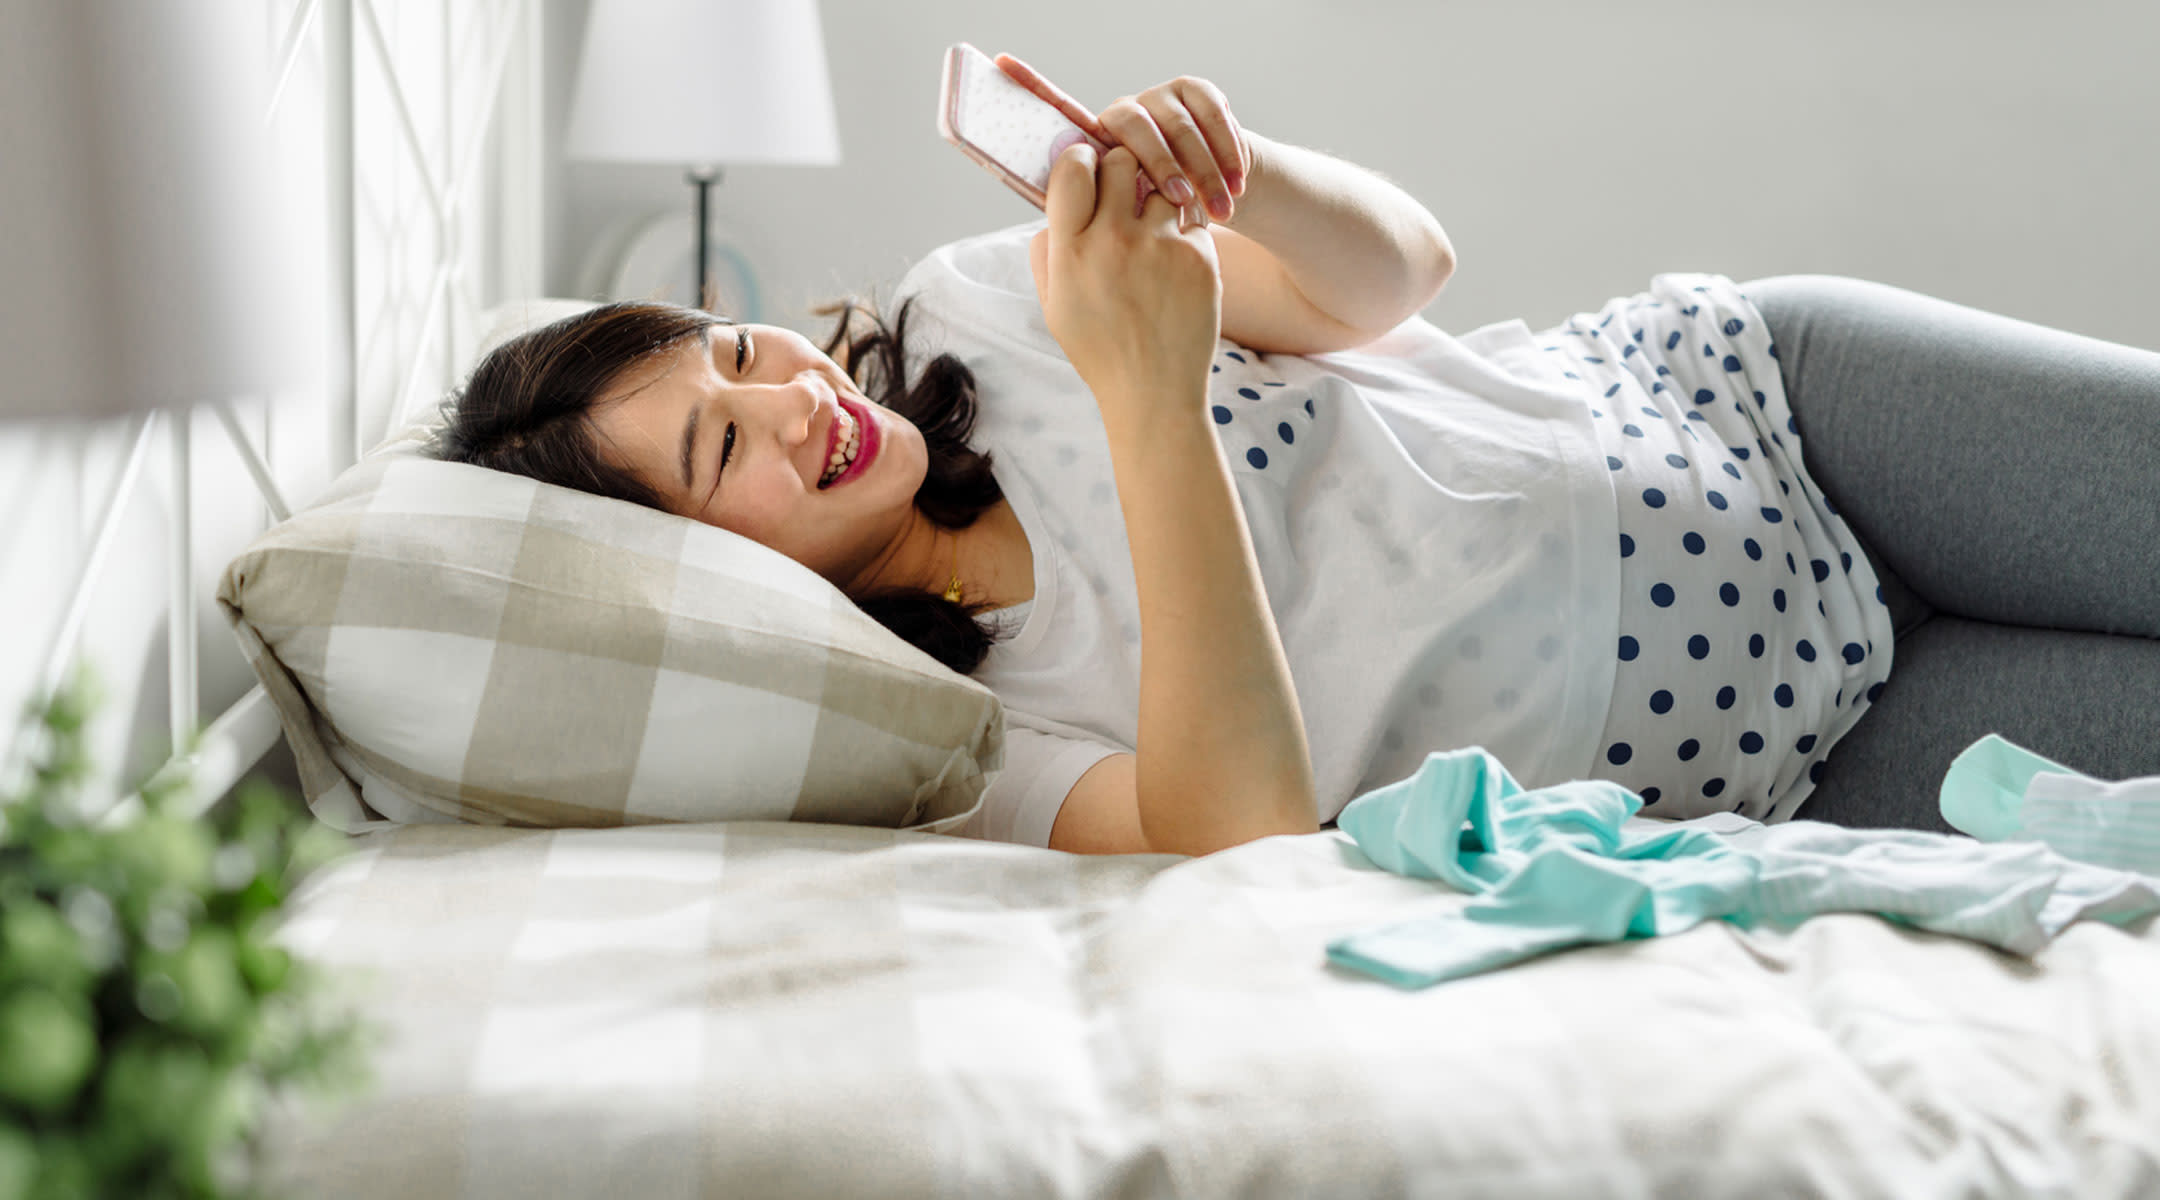 Pregnant woman laying on her bed and looking at her phone.